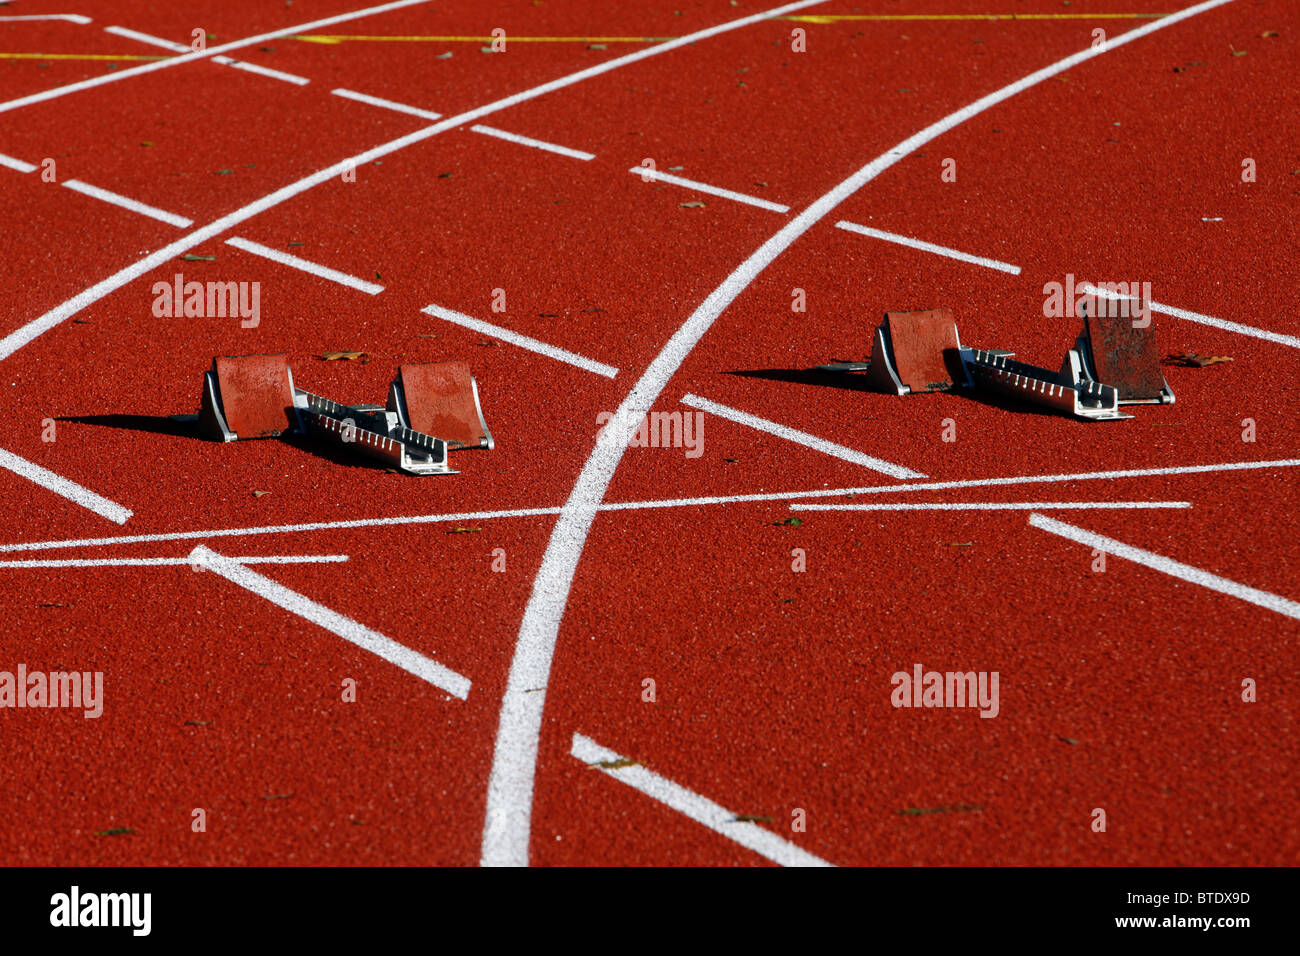 Sports area, running track, red tartan track. - Stock Image